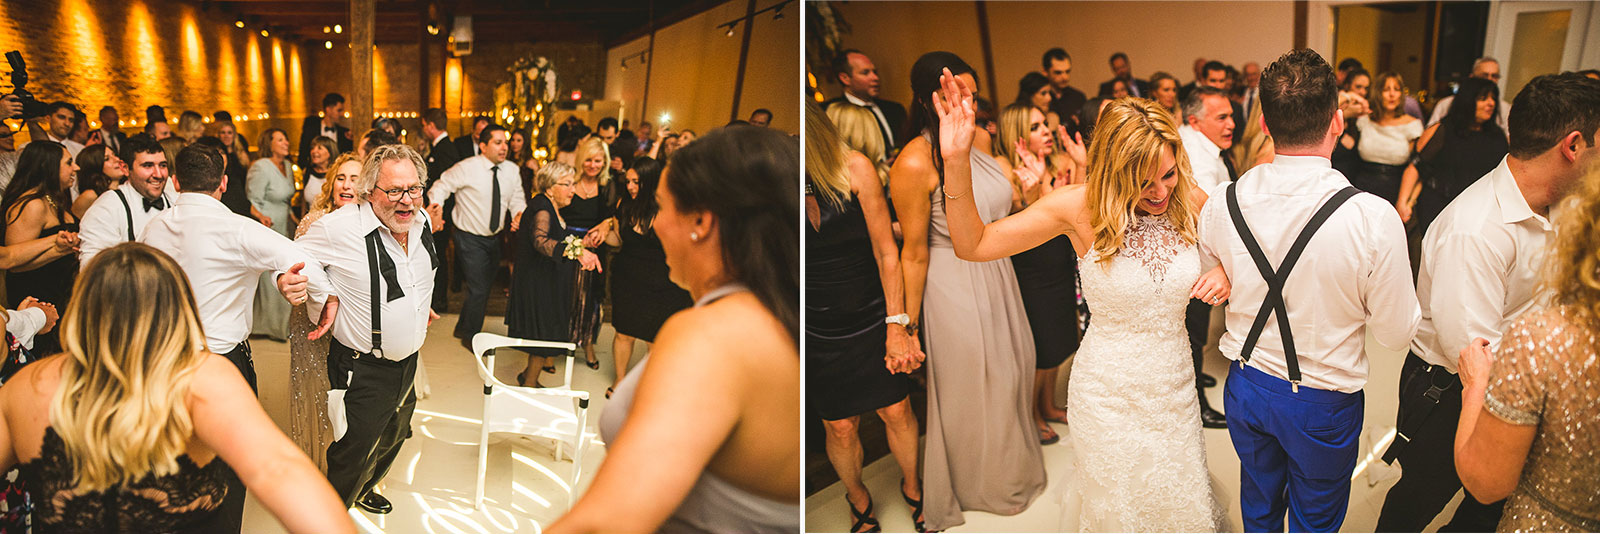 87 amazing wedding photography during reception - Chicago Wedding Photography at Gallery 1028 // Courtnie + David